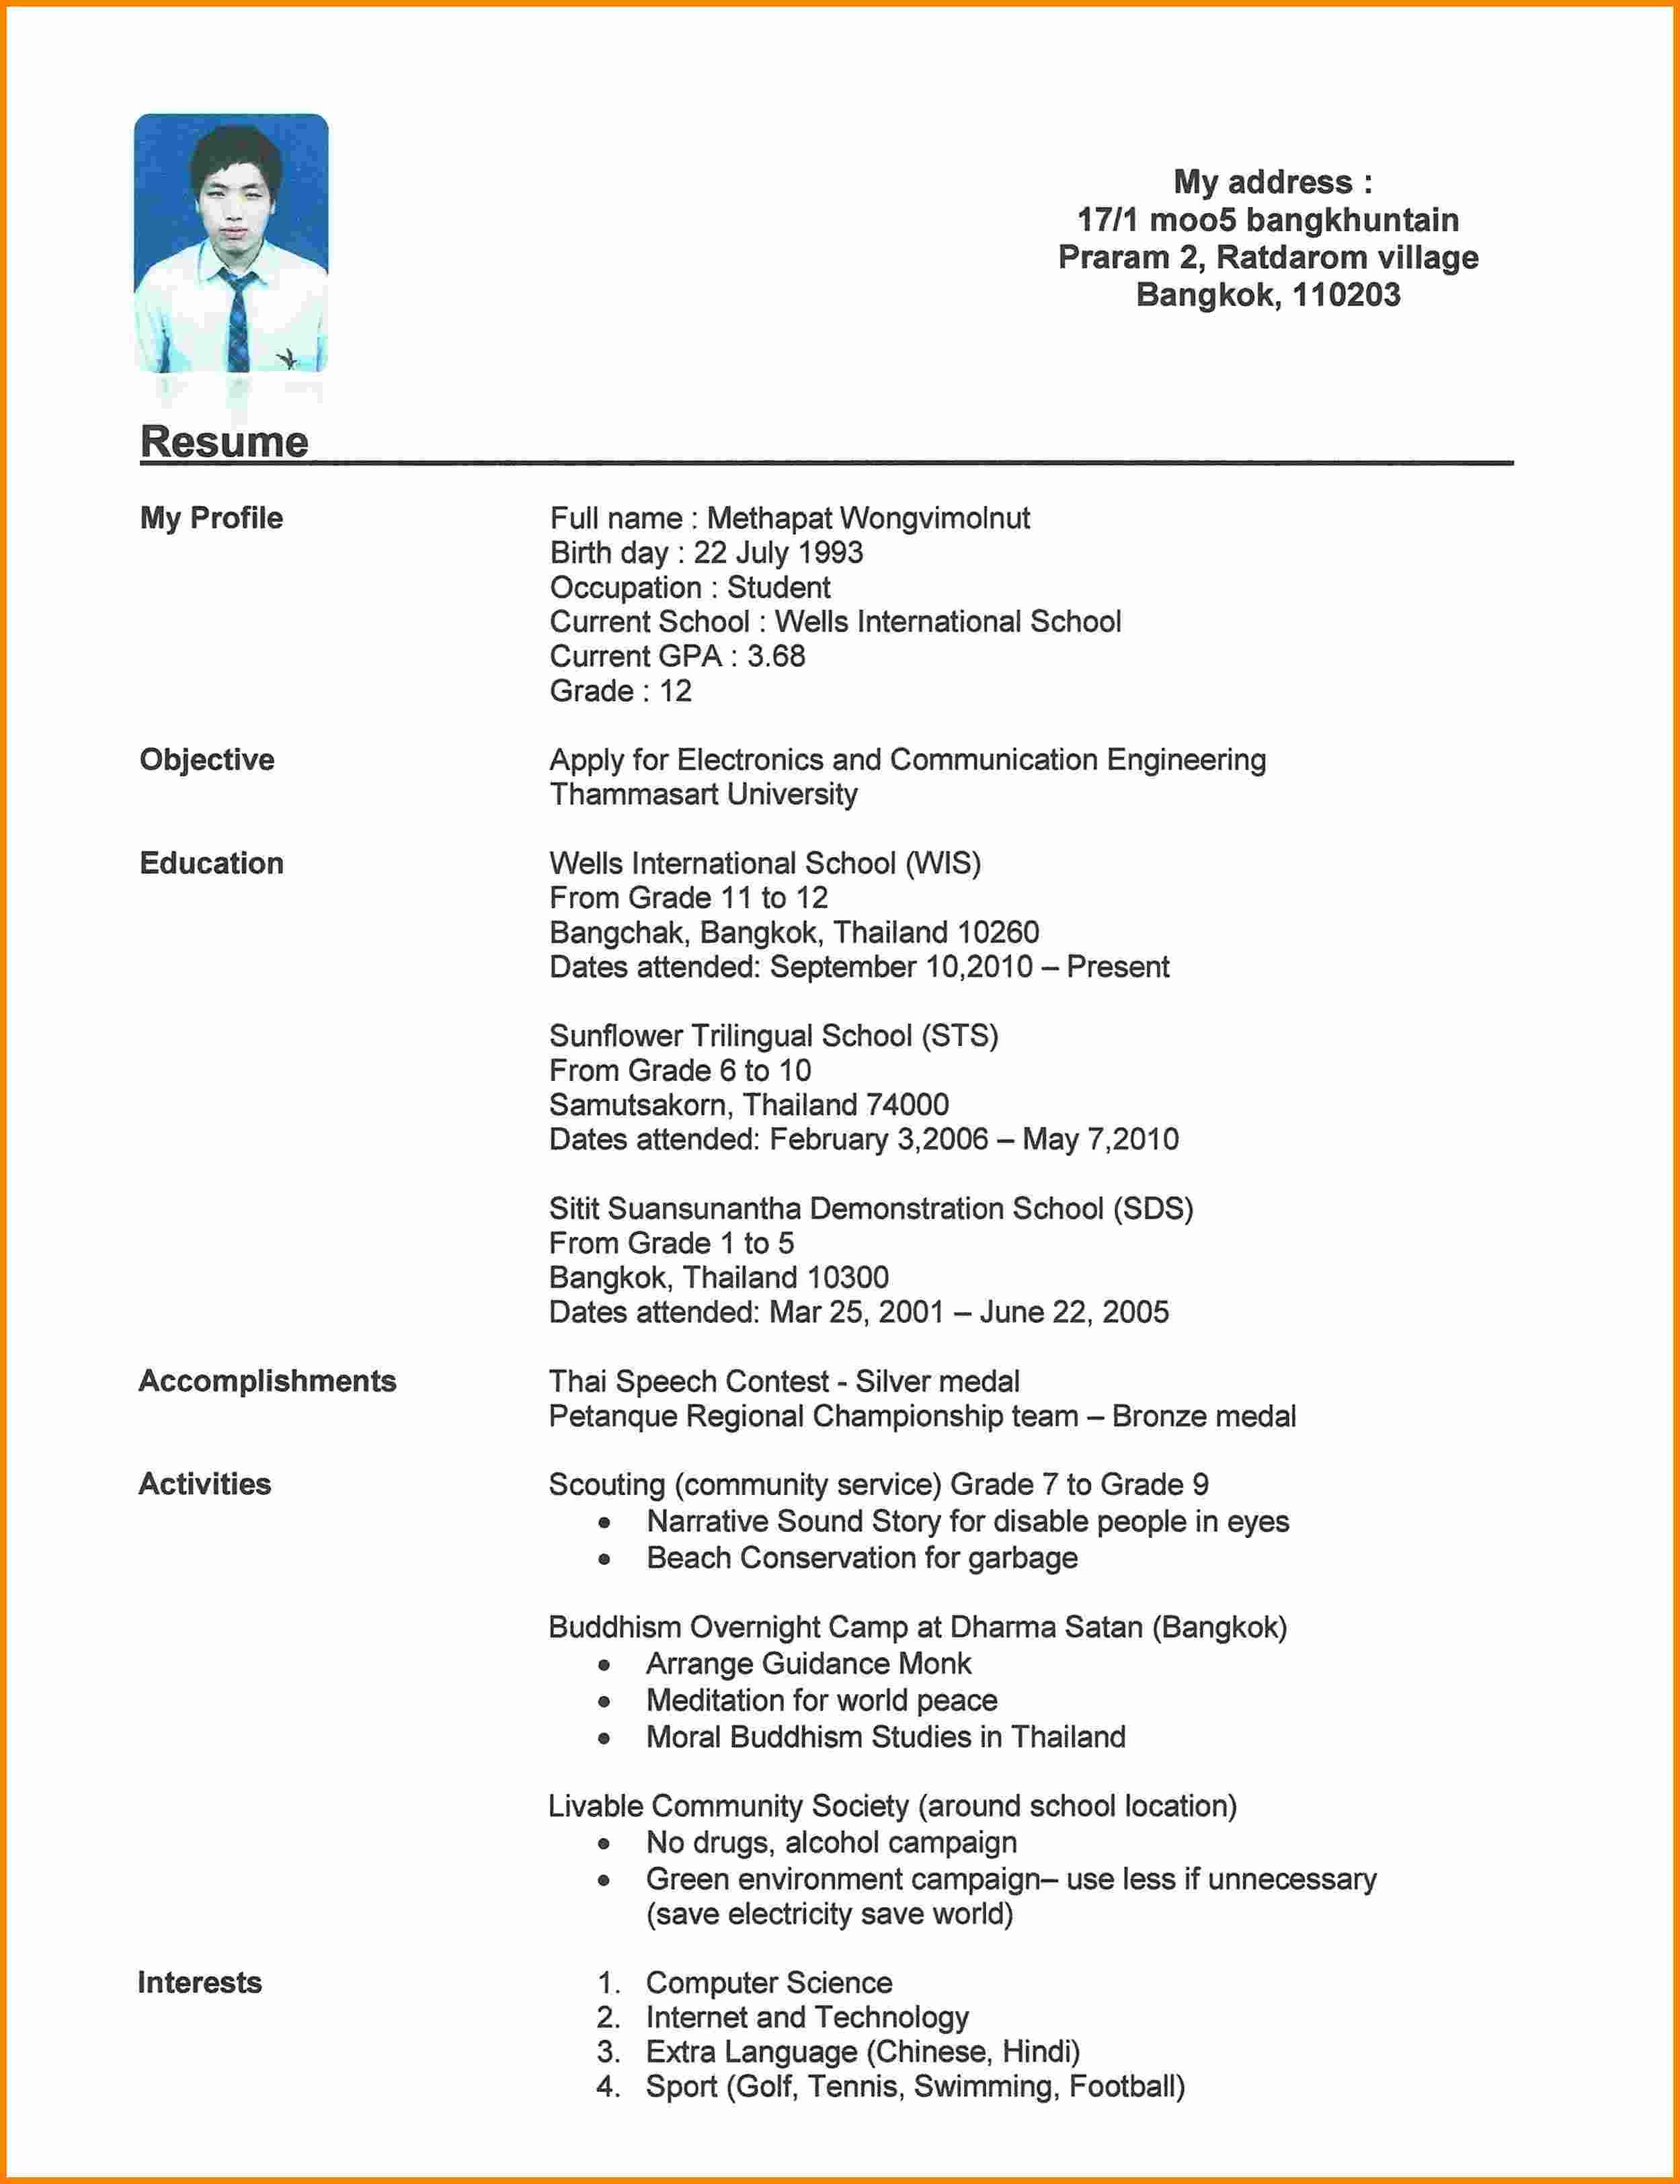 Curriculum Vitae Template Student 5 Cv Template for High School Student